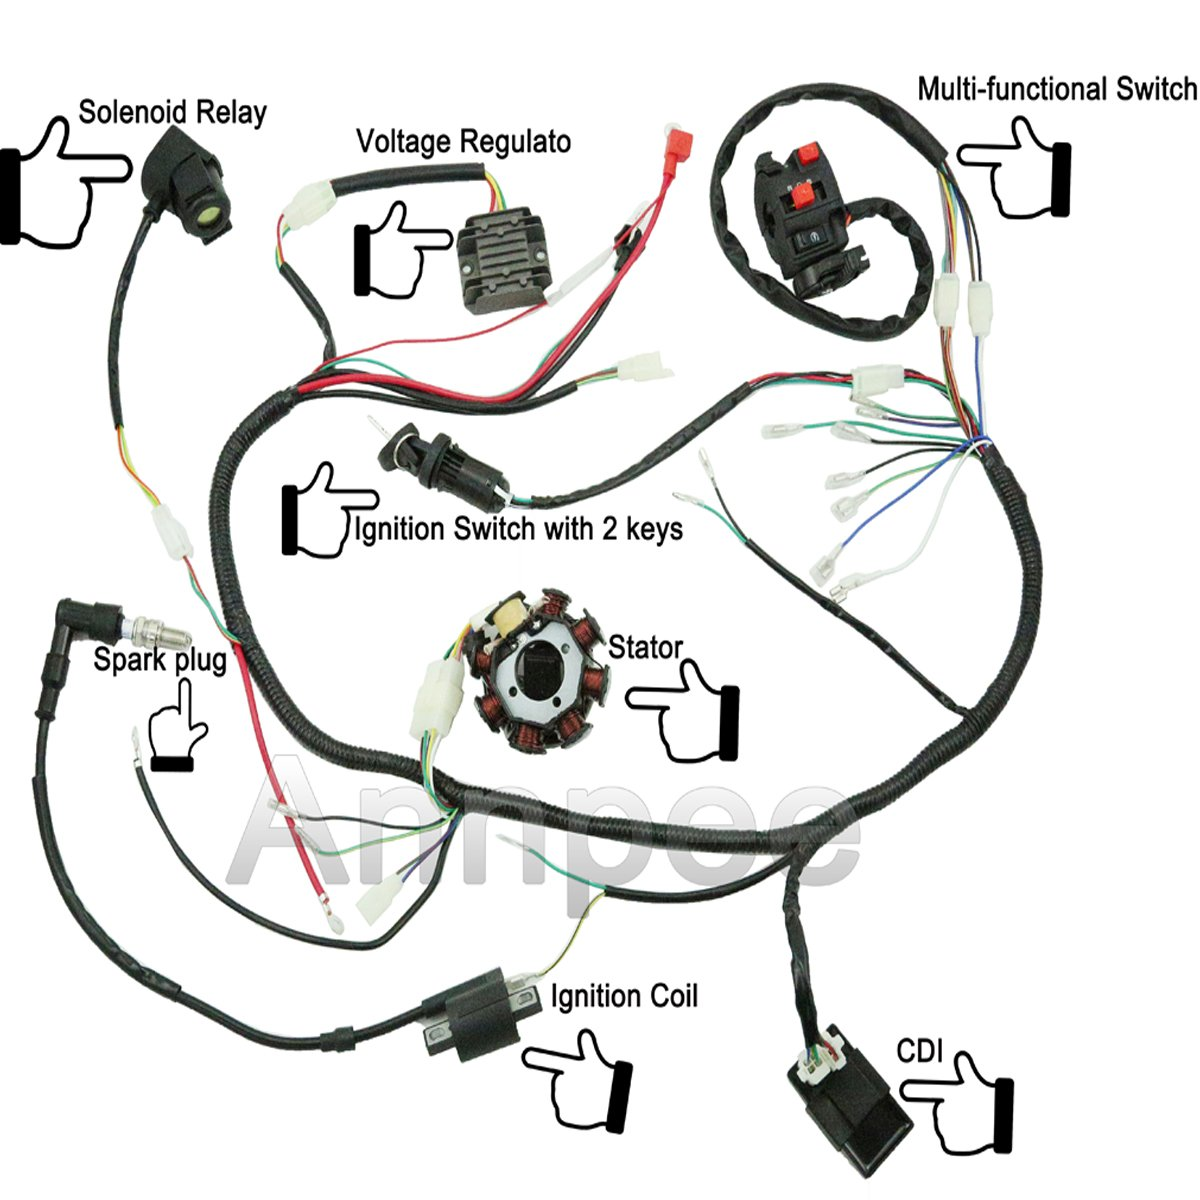 Cdi Stator Wiring - wiring diagram on the net on